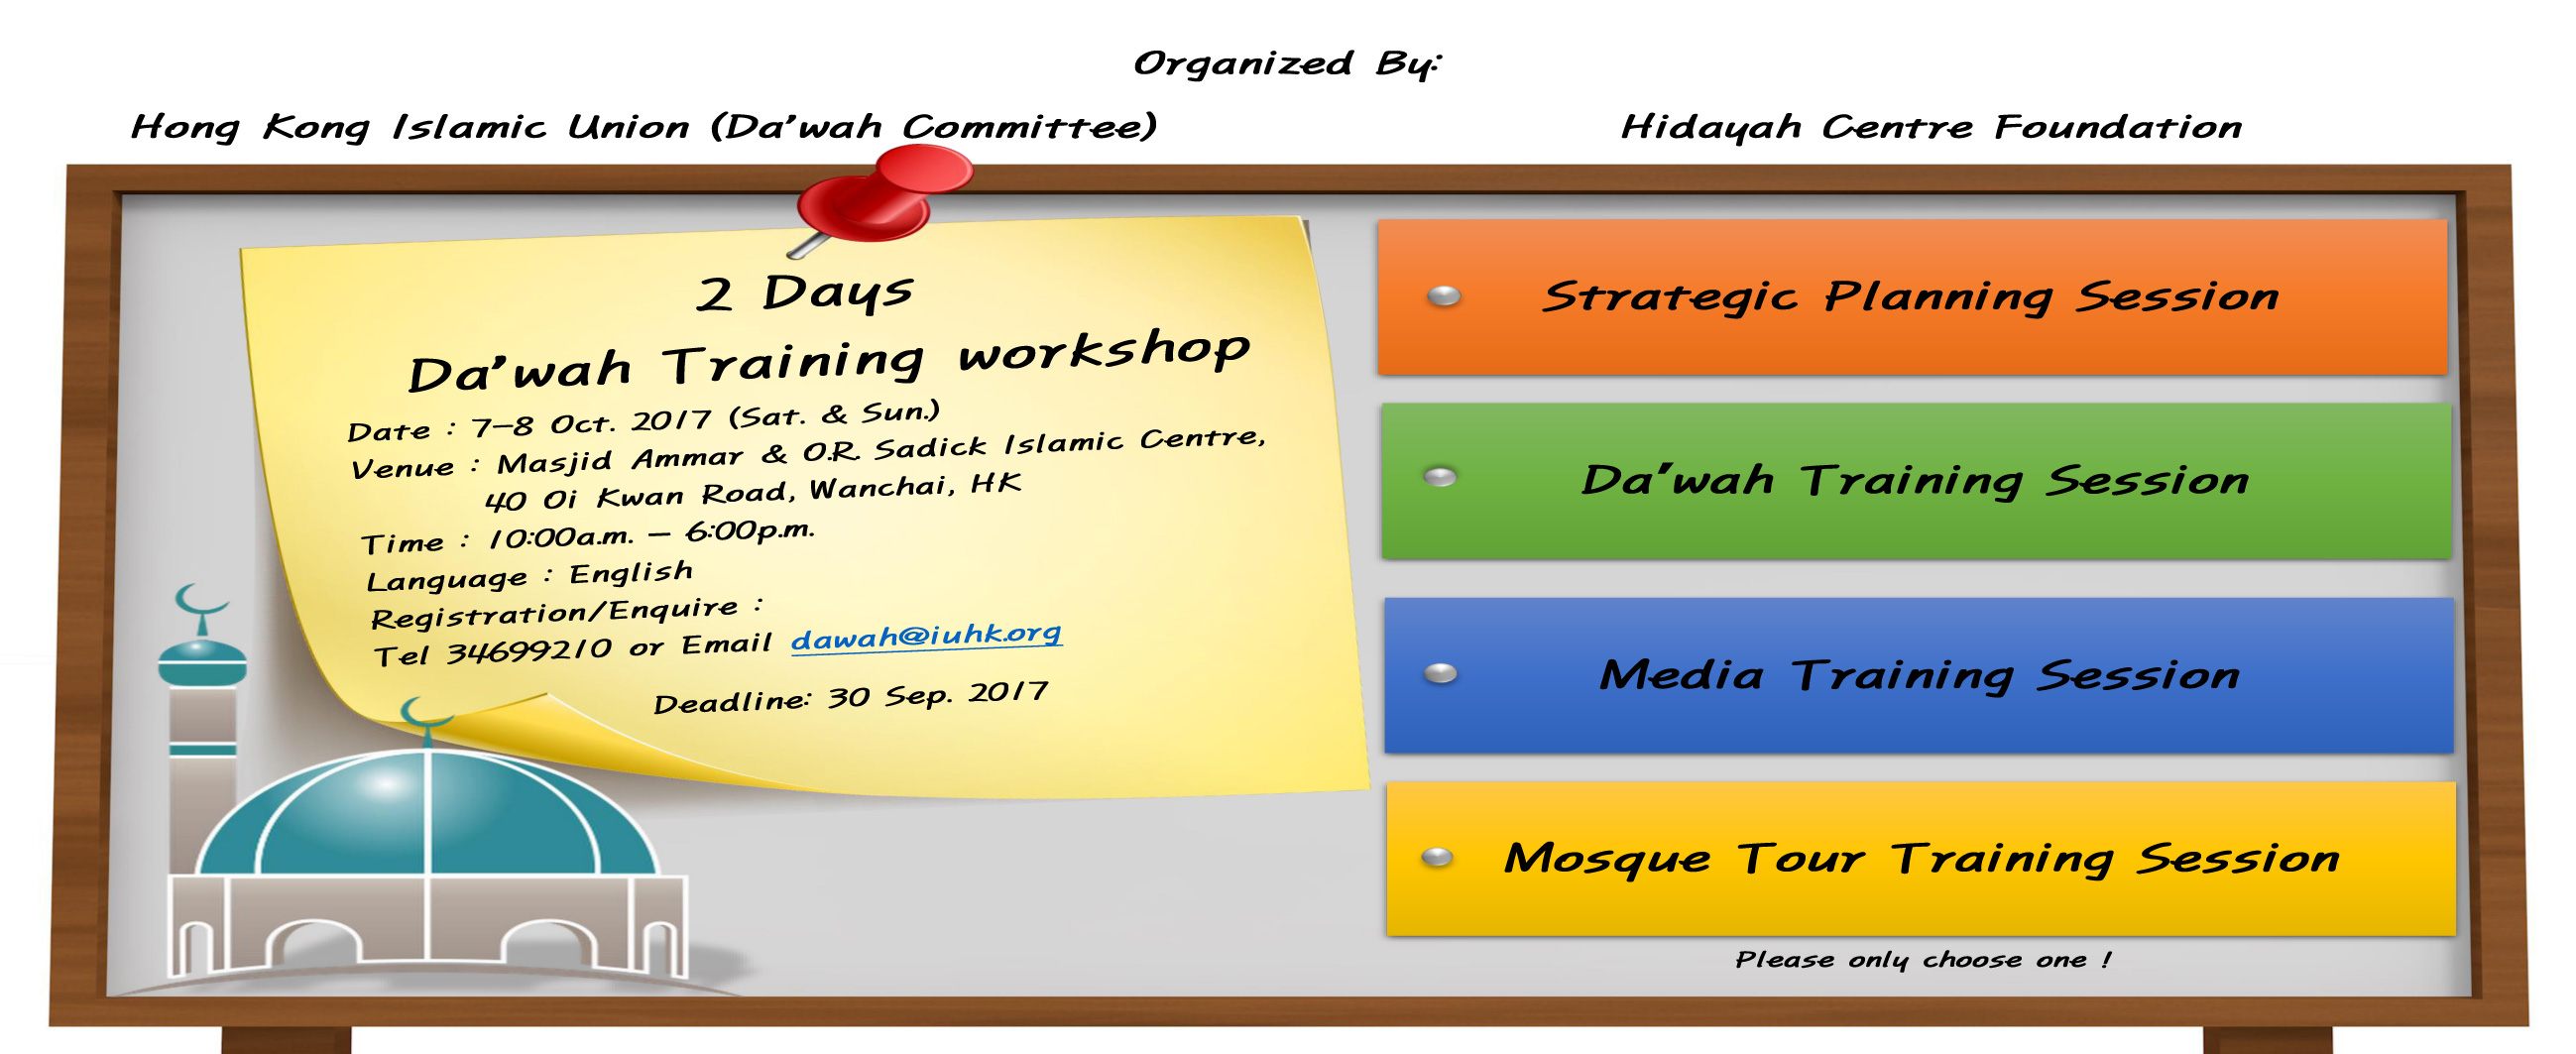 Da'wah Training